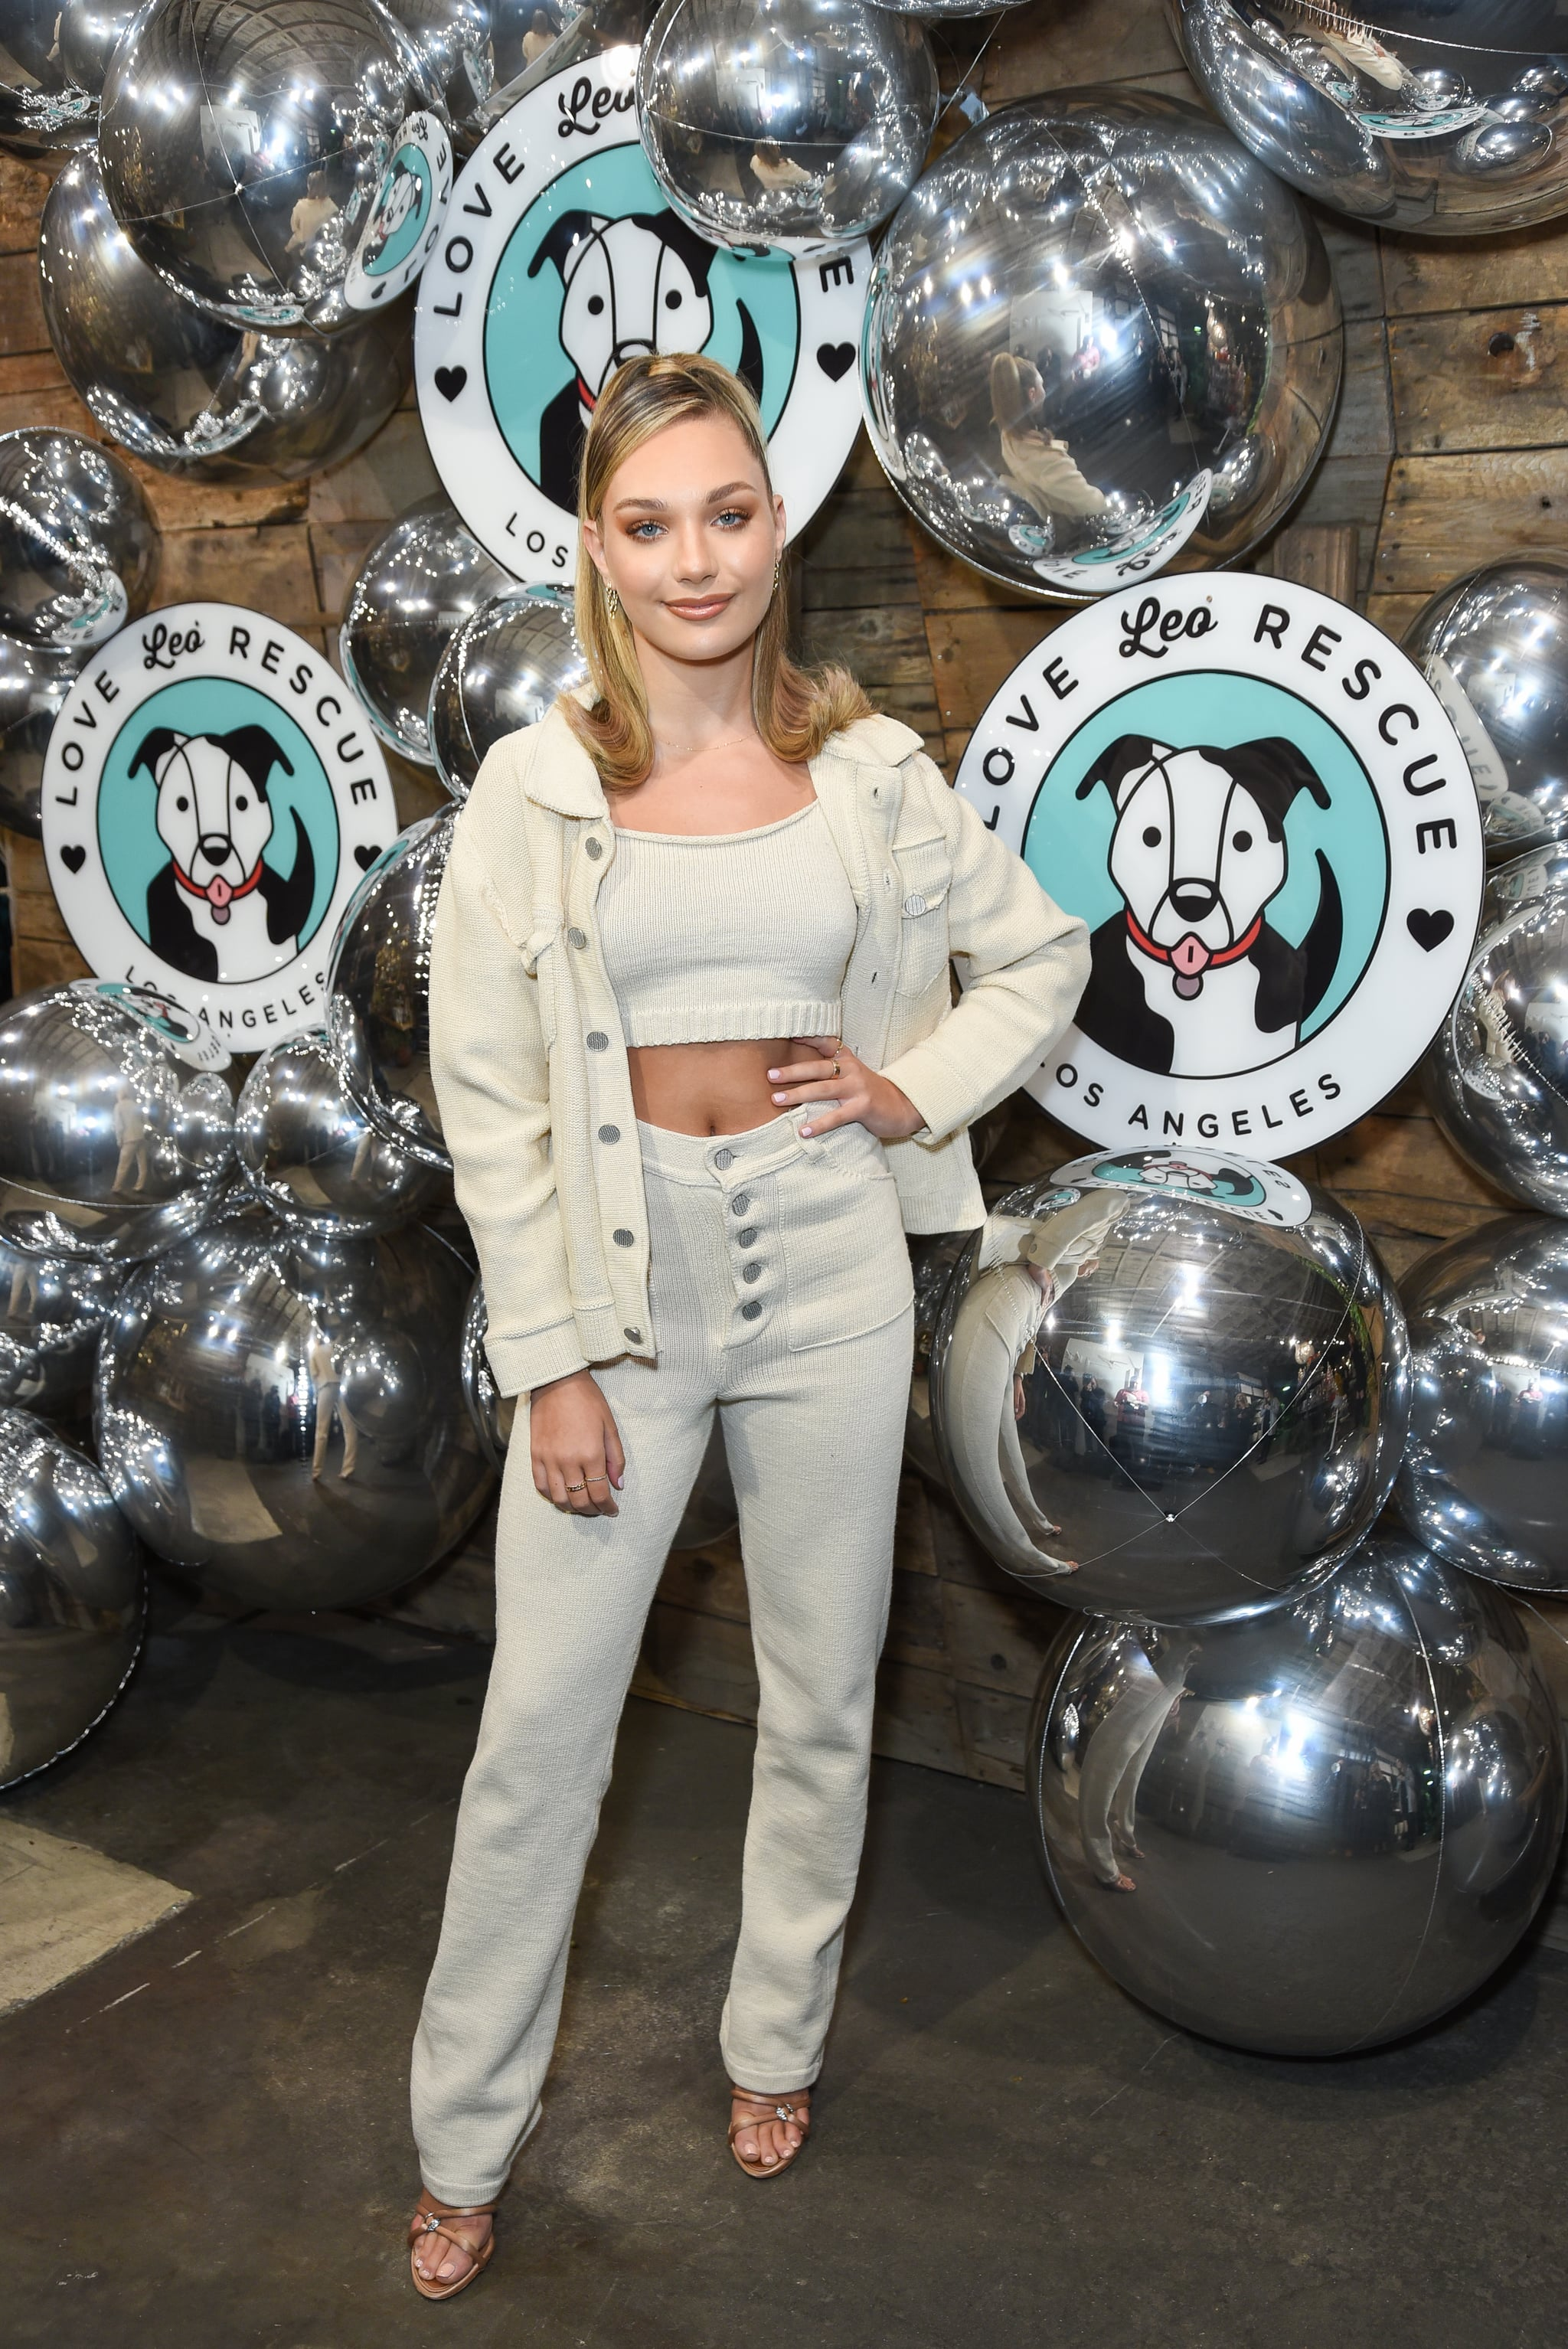 LOS ANGELES, CALIFORNIA - NOVEMBER 06: Maddie Ziegler attends Love Leo Rescue's 2nd Annual Cocktails for a Cause at Rolling Greens Los Angeles on November 06, 2019 in Los Angeles, California. (Photo by Presley Ann/Getty Images)